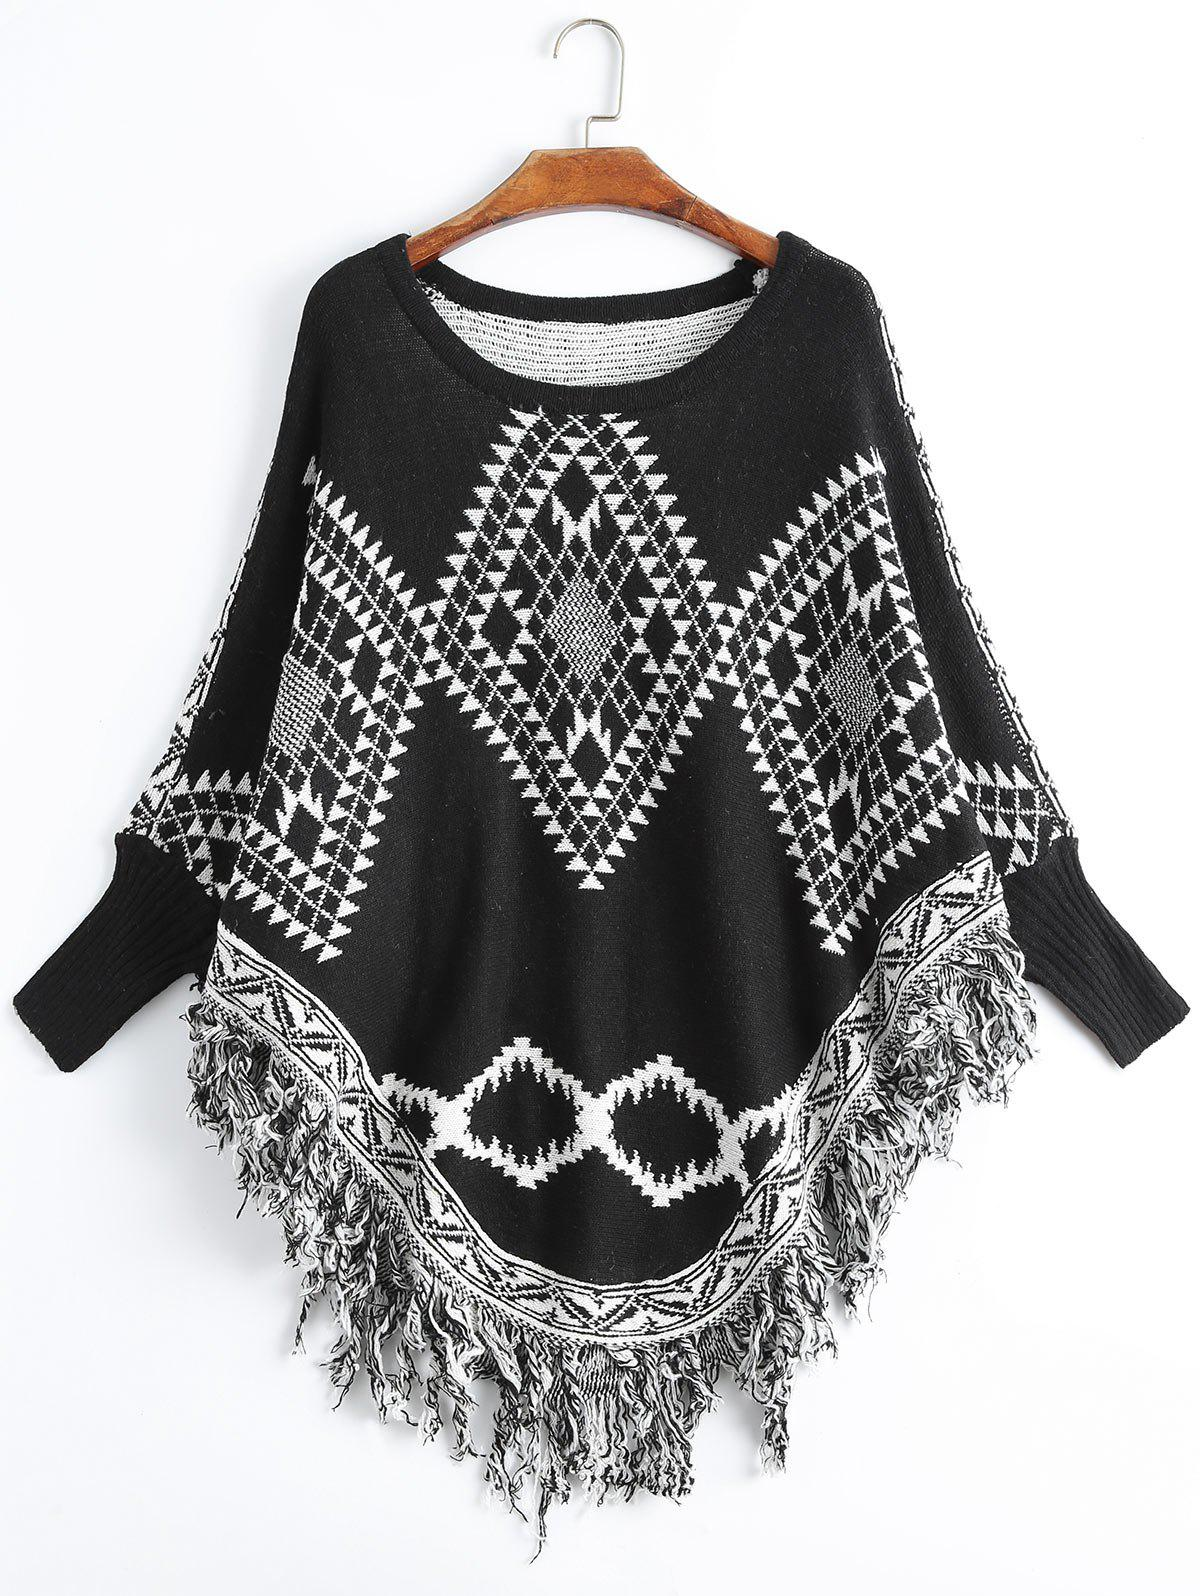 Geometric Fringed Plus Size Poncho SweaterWOMEN<br><br>Size: ONE SIZE; Color: BLACK; Type: Pullovers; Material: Polyester,Spandex; Sleeve Length: Full; Collar: Crew Neck; Style: Fashion; Season: Fall; Pattern Type: Geometric; Weight: 0.5500kg; Package Contents: 1 x Sweater;